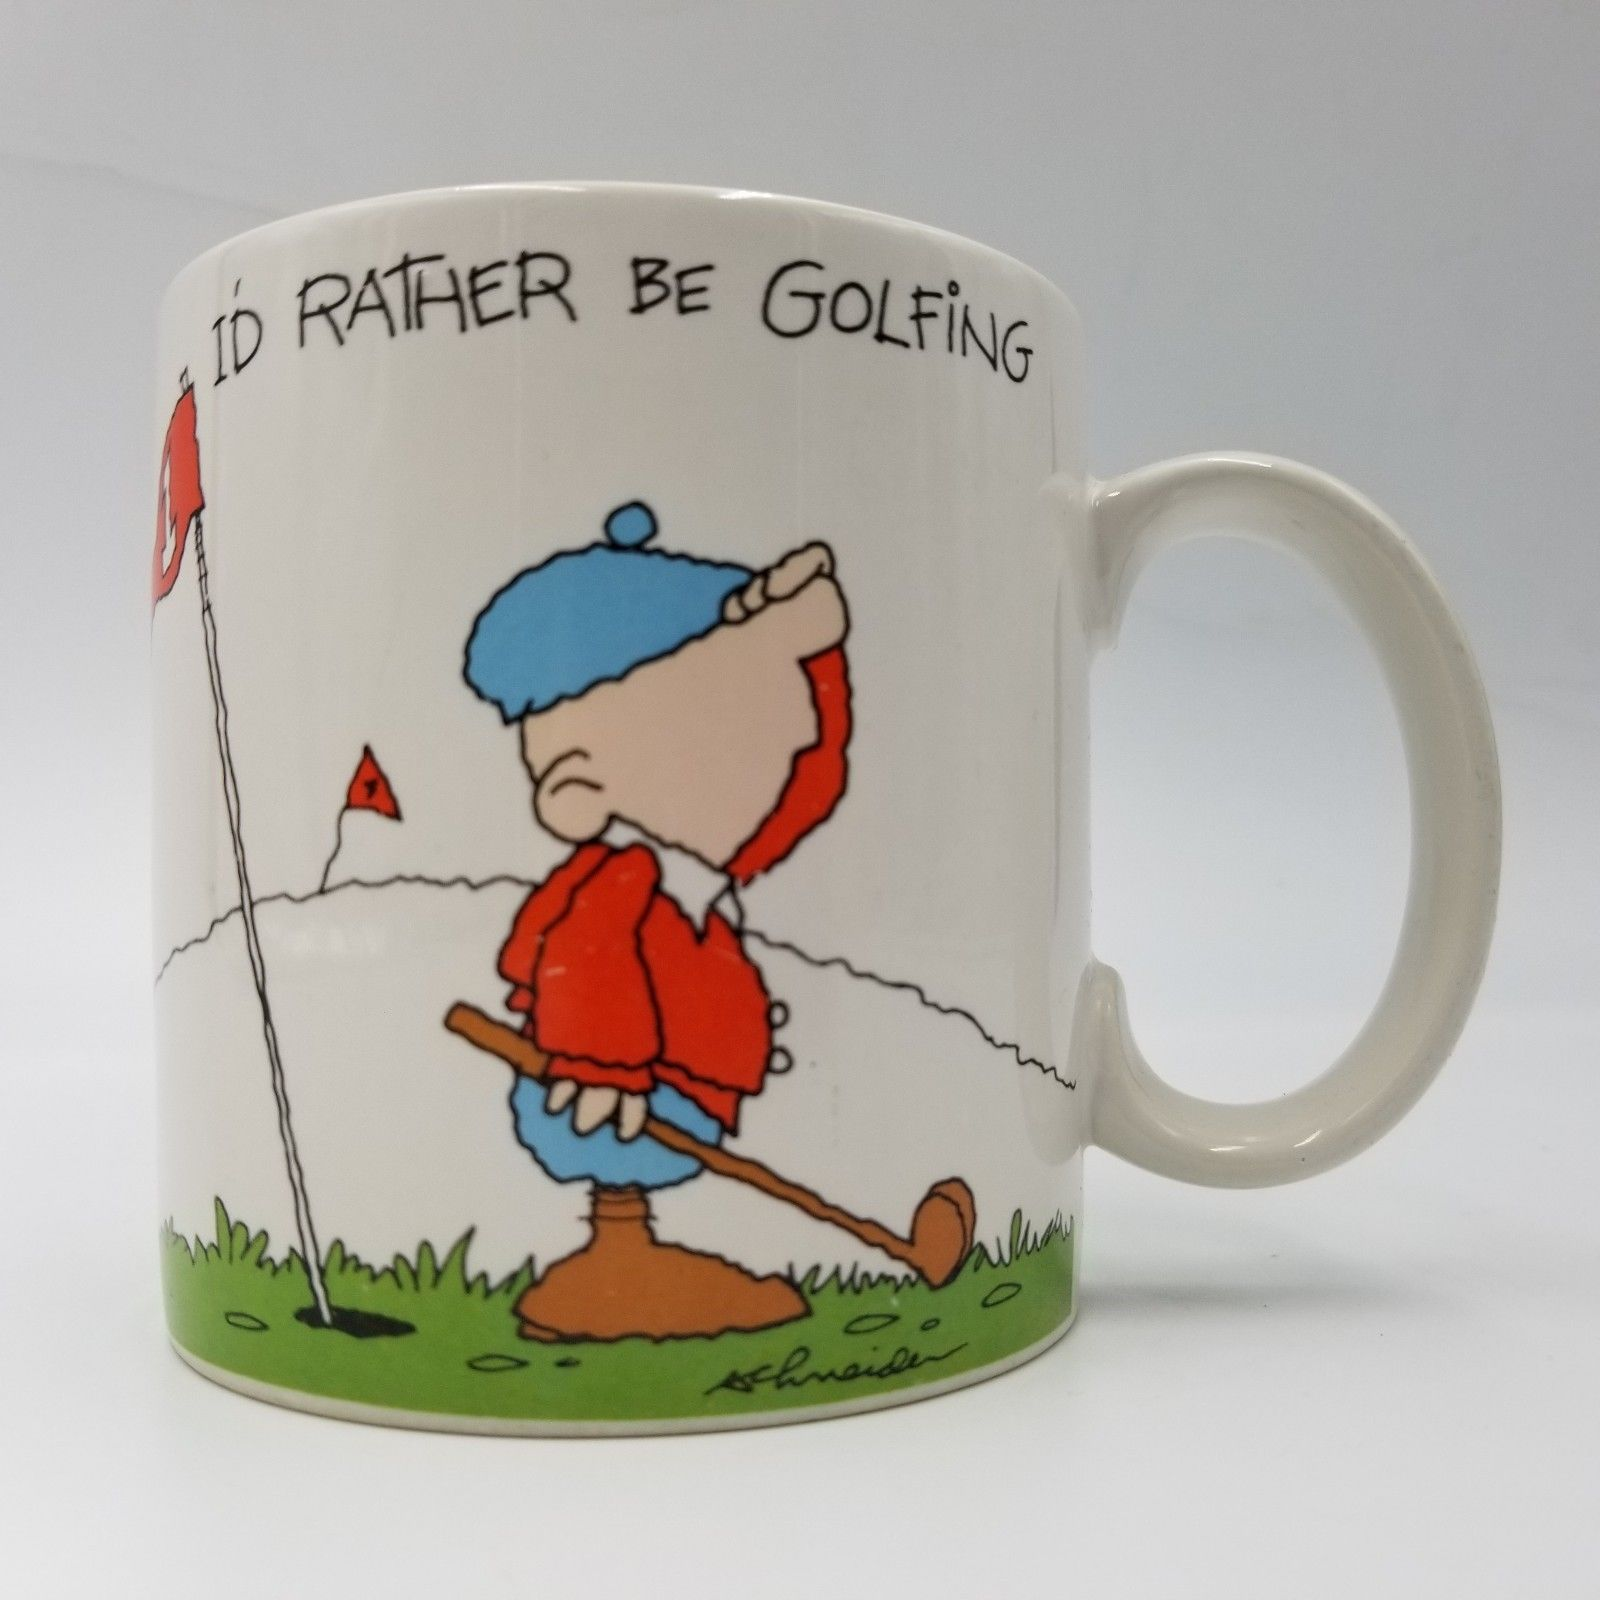 Primary image for I'd Rather Be Golfing by Schneider Ceramic Coffee Tea Mug Cocoa Cup Russ Berrie